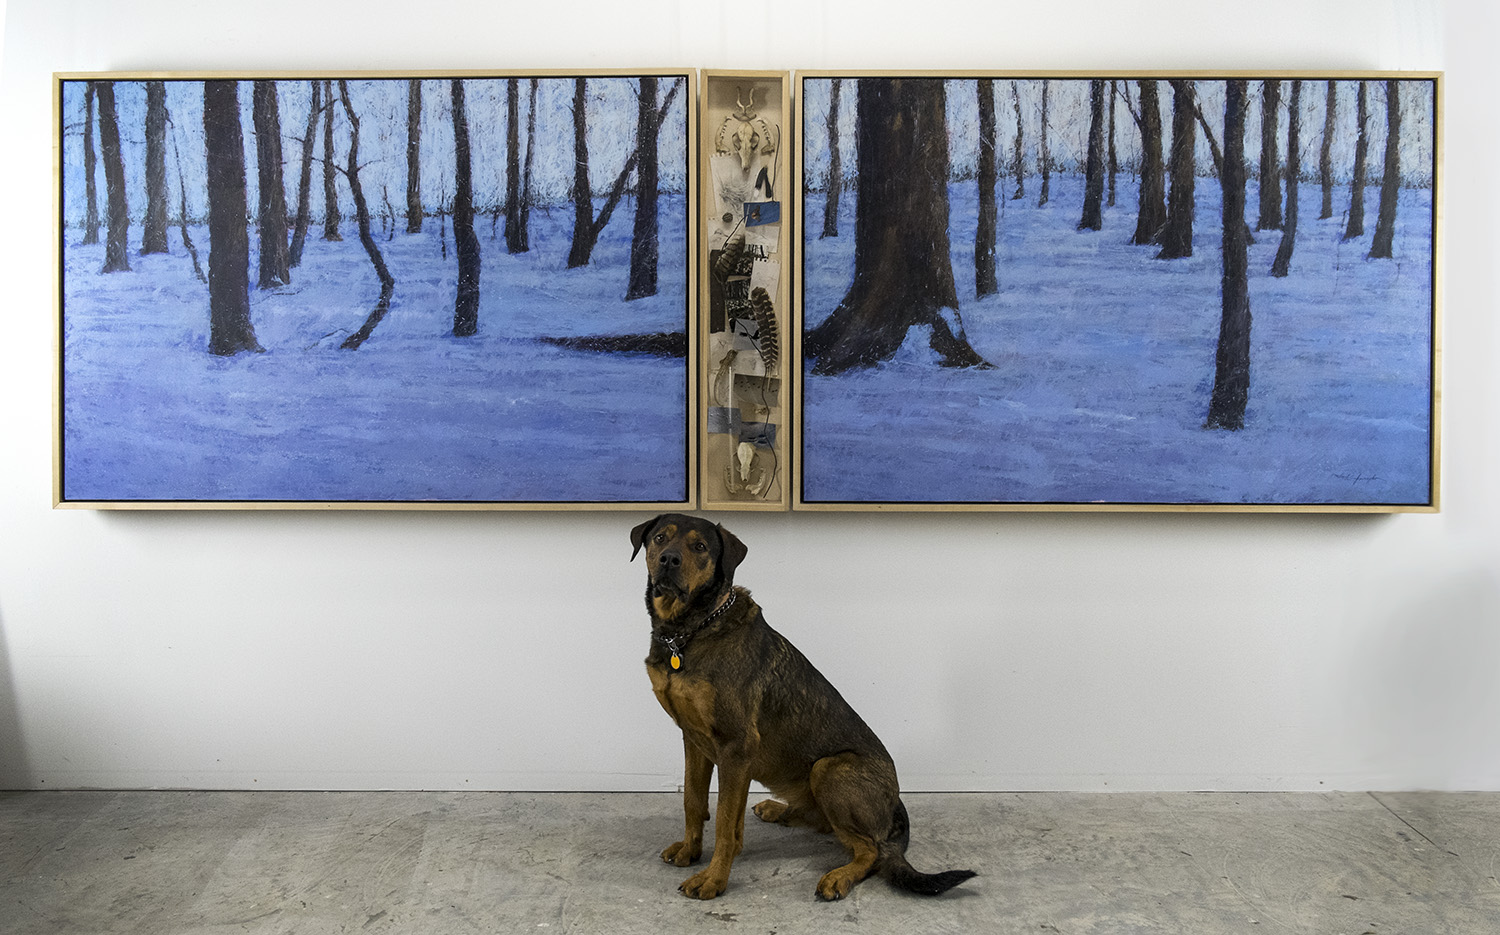 Trespass, oil on canvas with curio cabinet, and the Big Nugget. 48 x 144 inches, pup not included.Available through the artist.